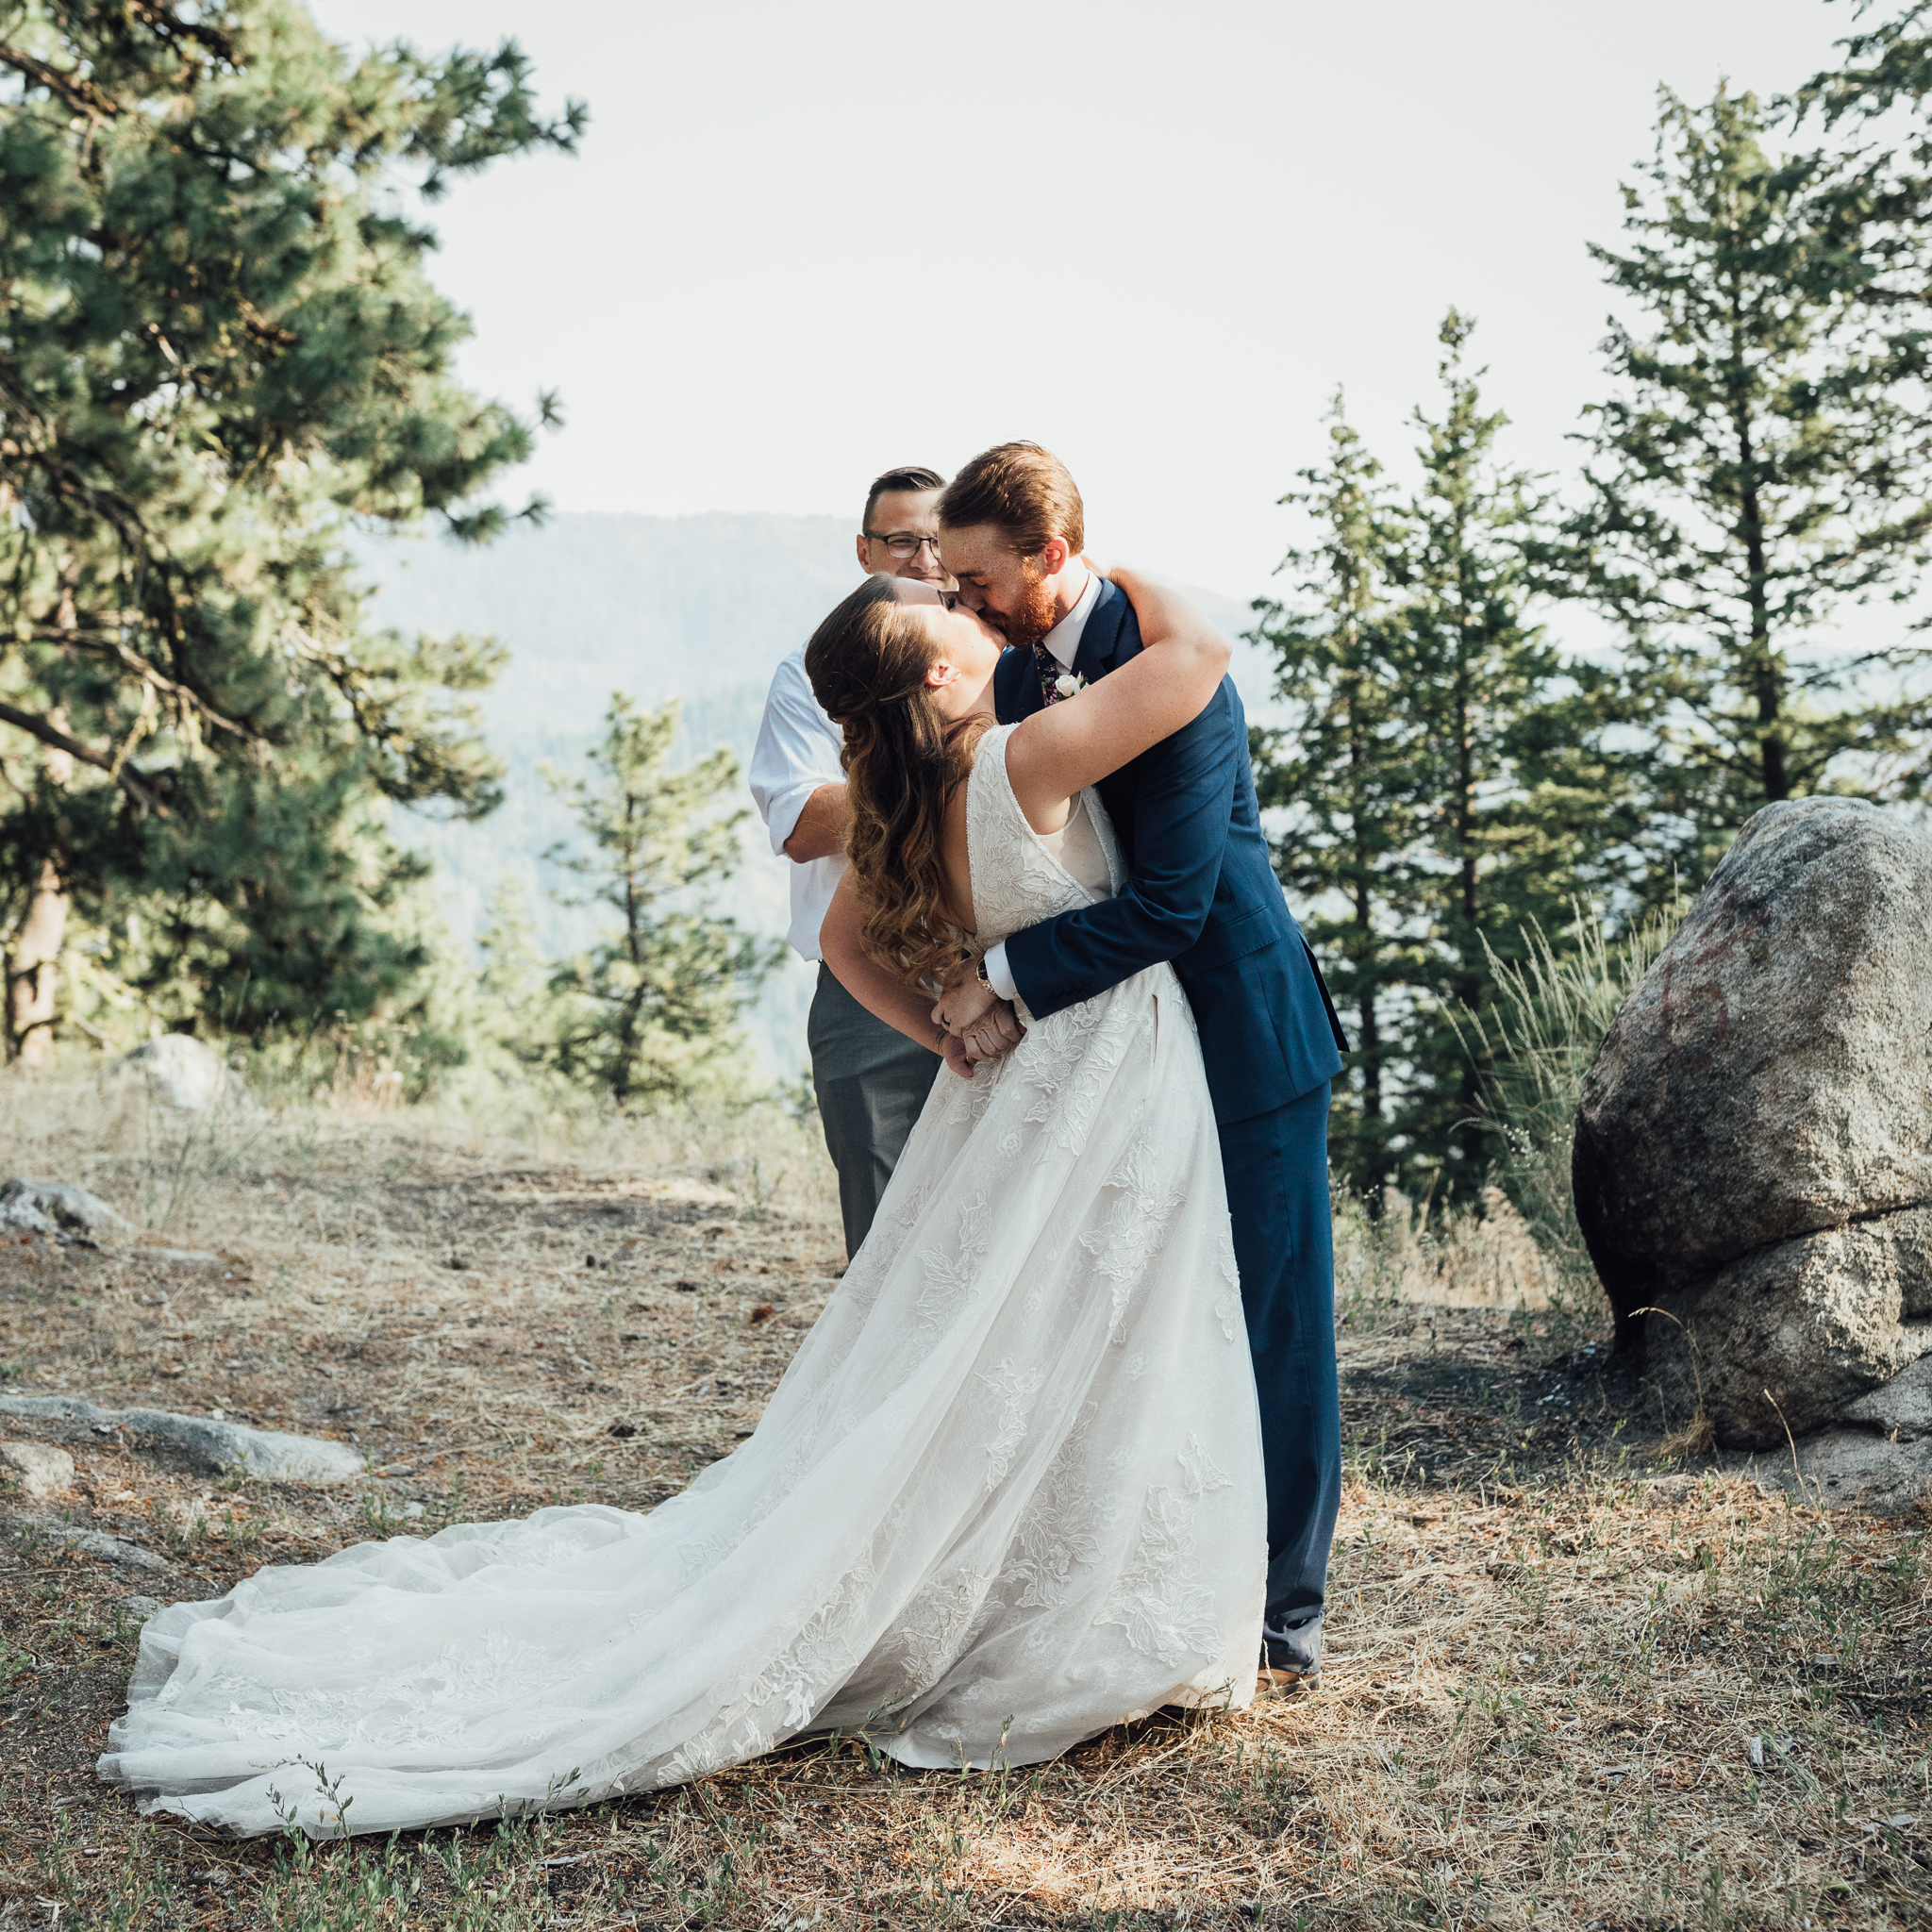 BlogElopement-76.jpg